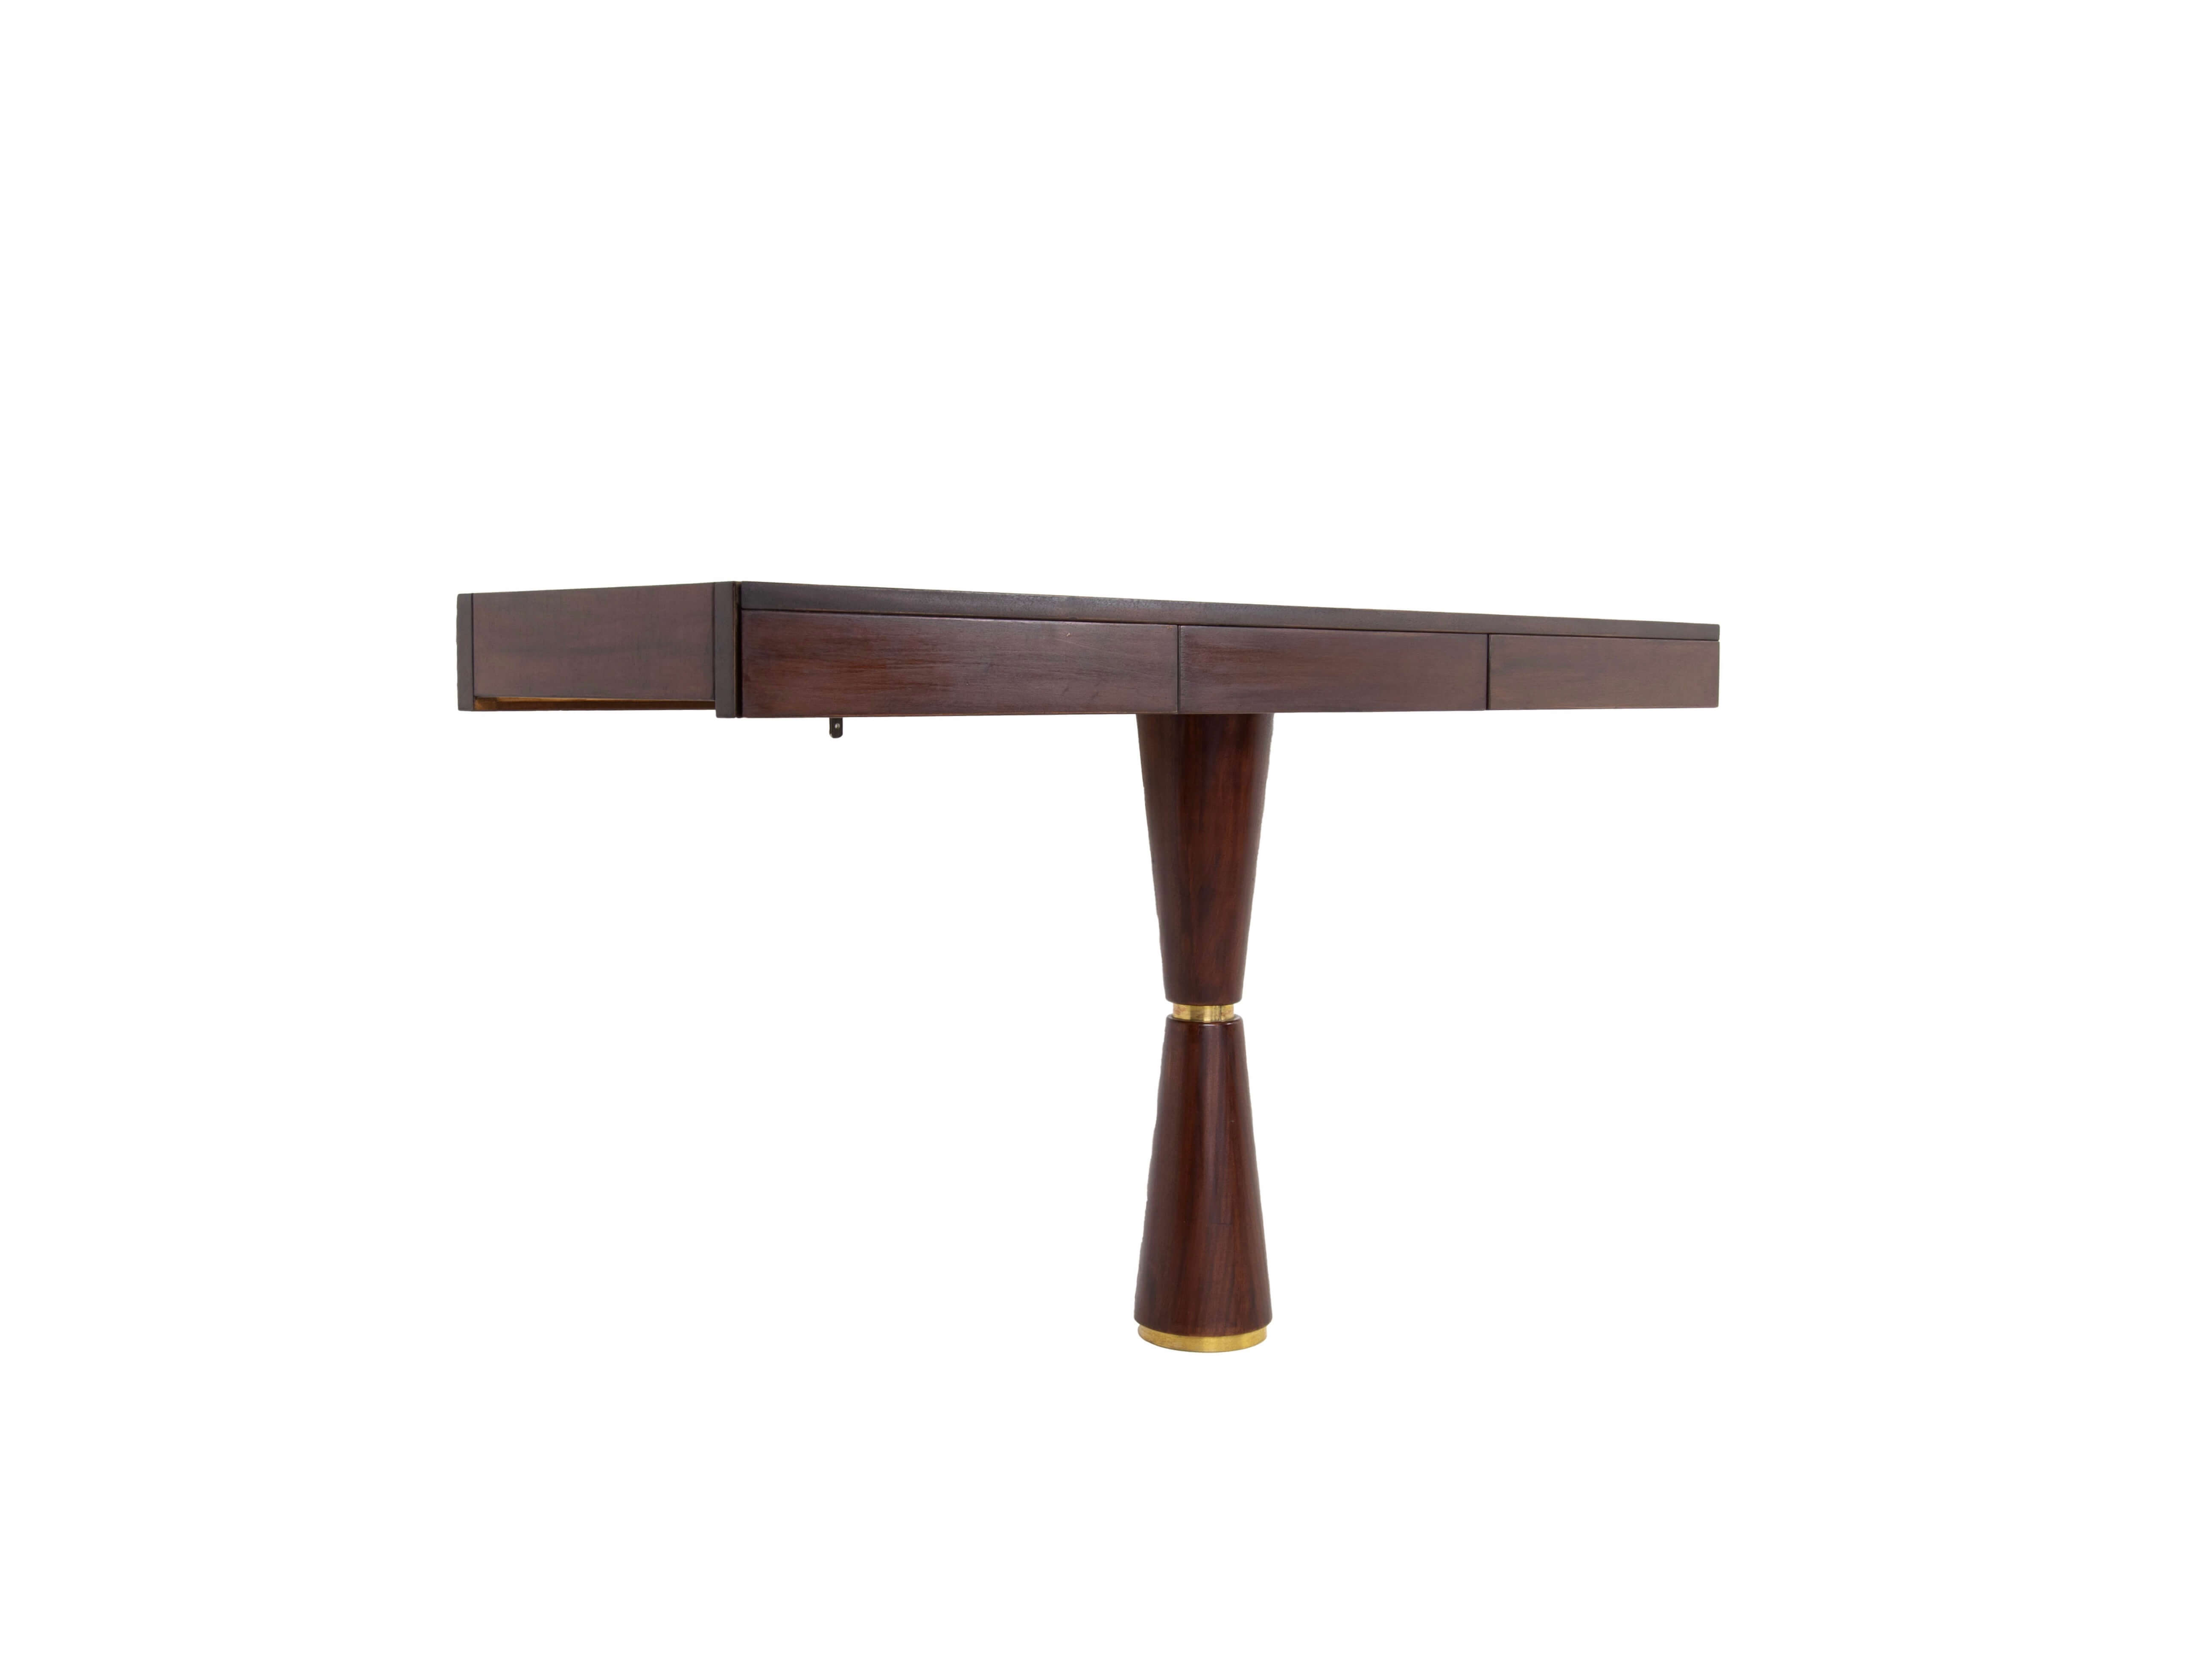 Side view Italian Modern Console in Hard Wood and Brass Attr. to Angelo Mangiarotti